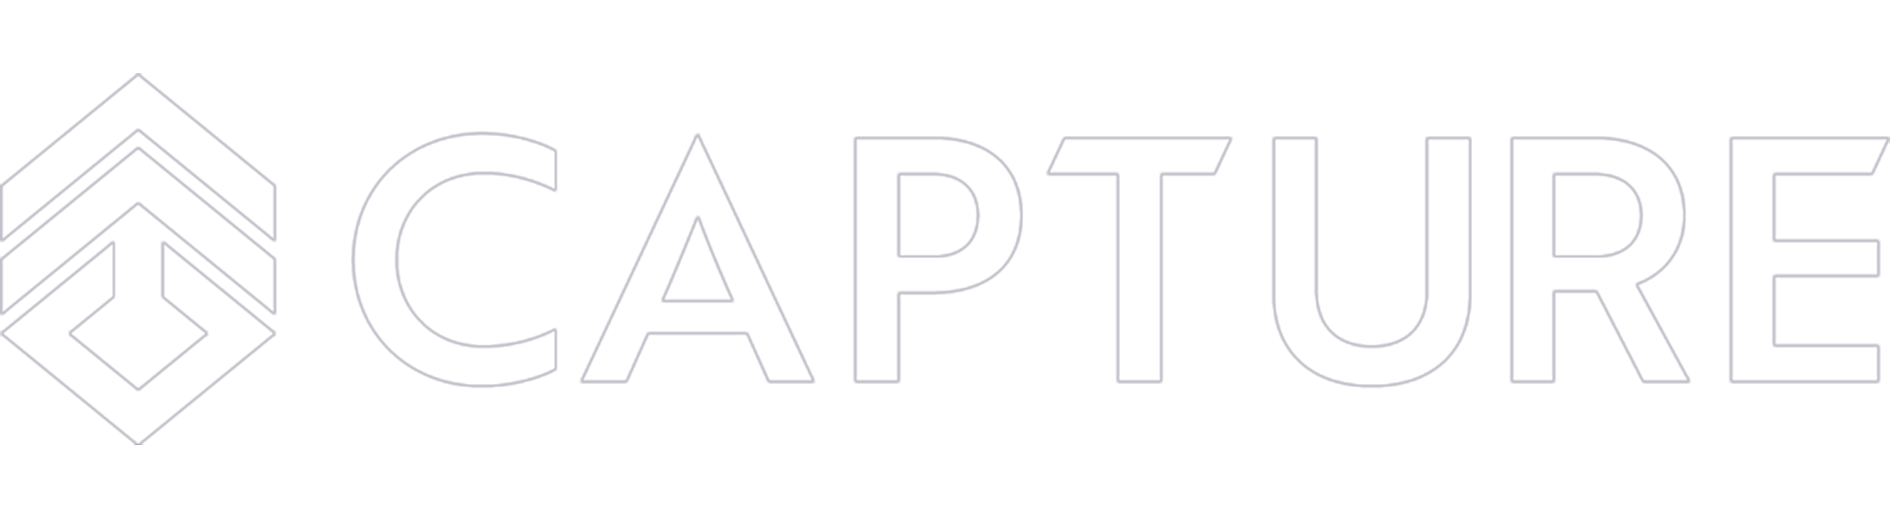 CaptureCollective_Logo